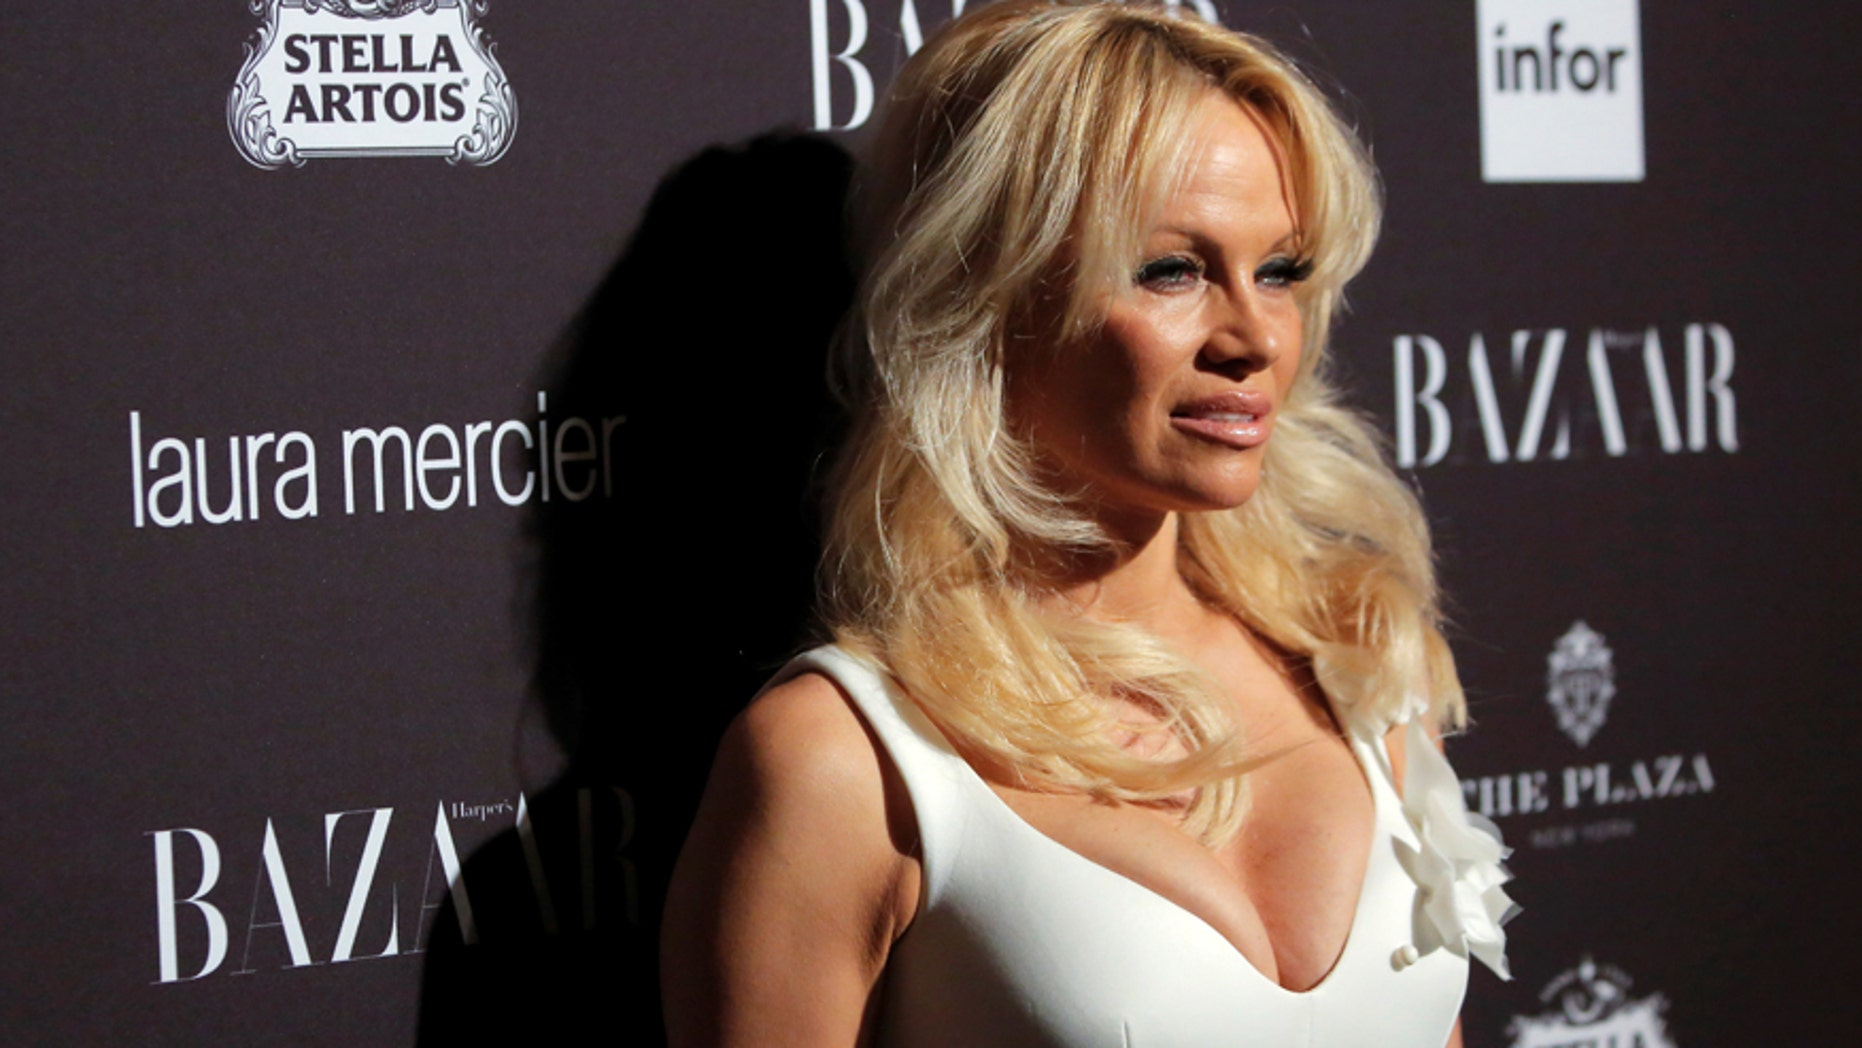 Pamela Anderson, pictured here in September 2016, went on Twitter on Wednesday to share her thoughts on Italy.